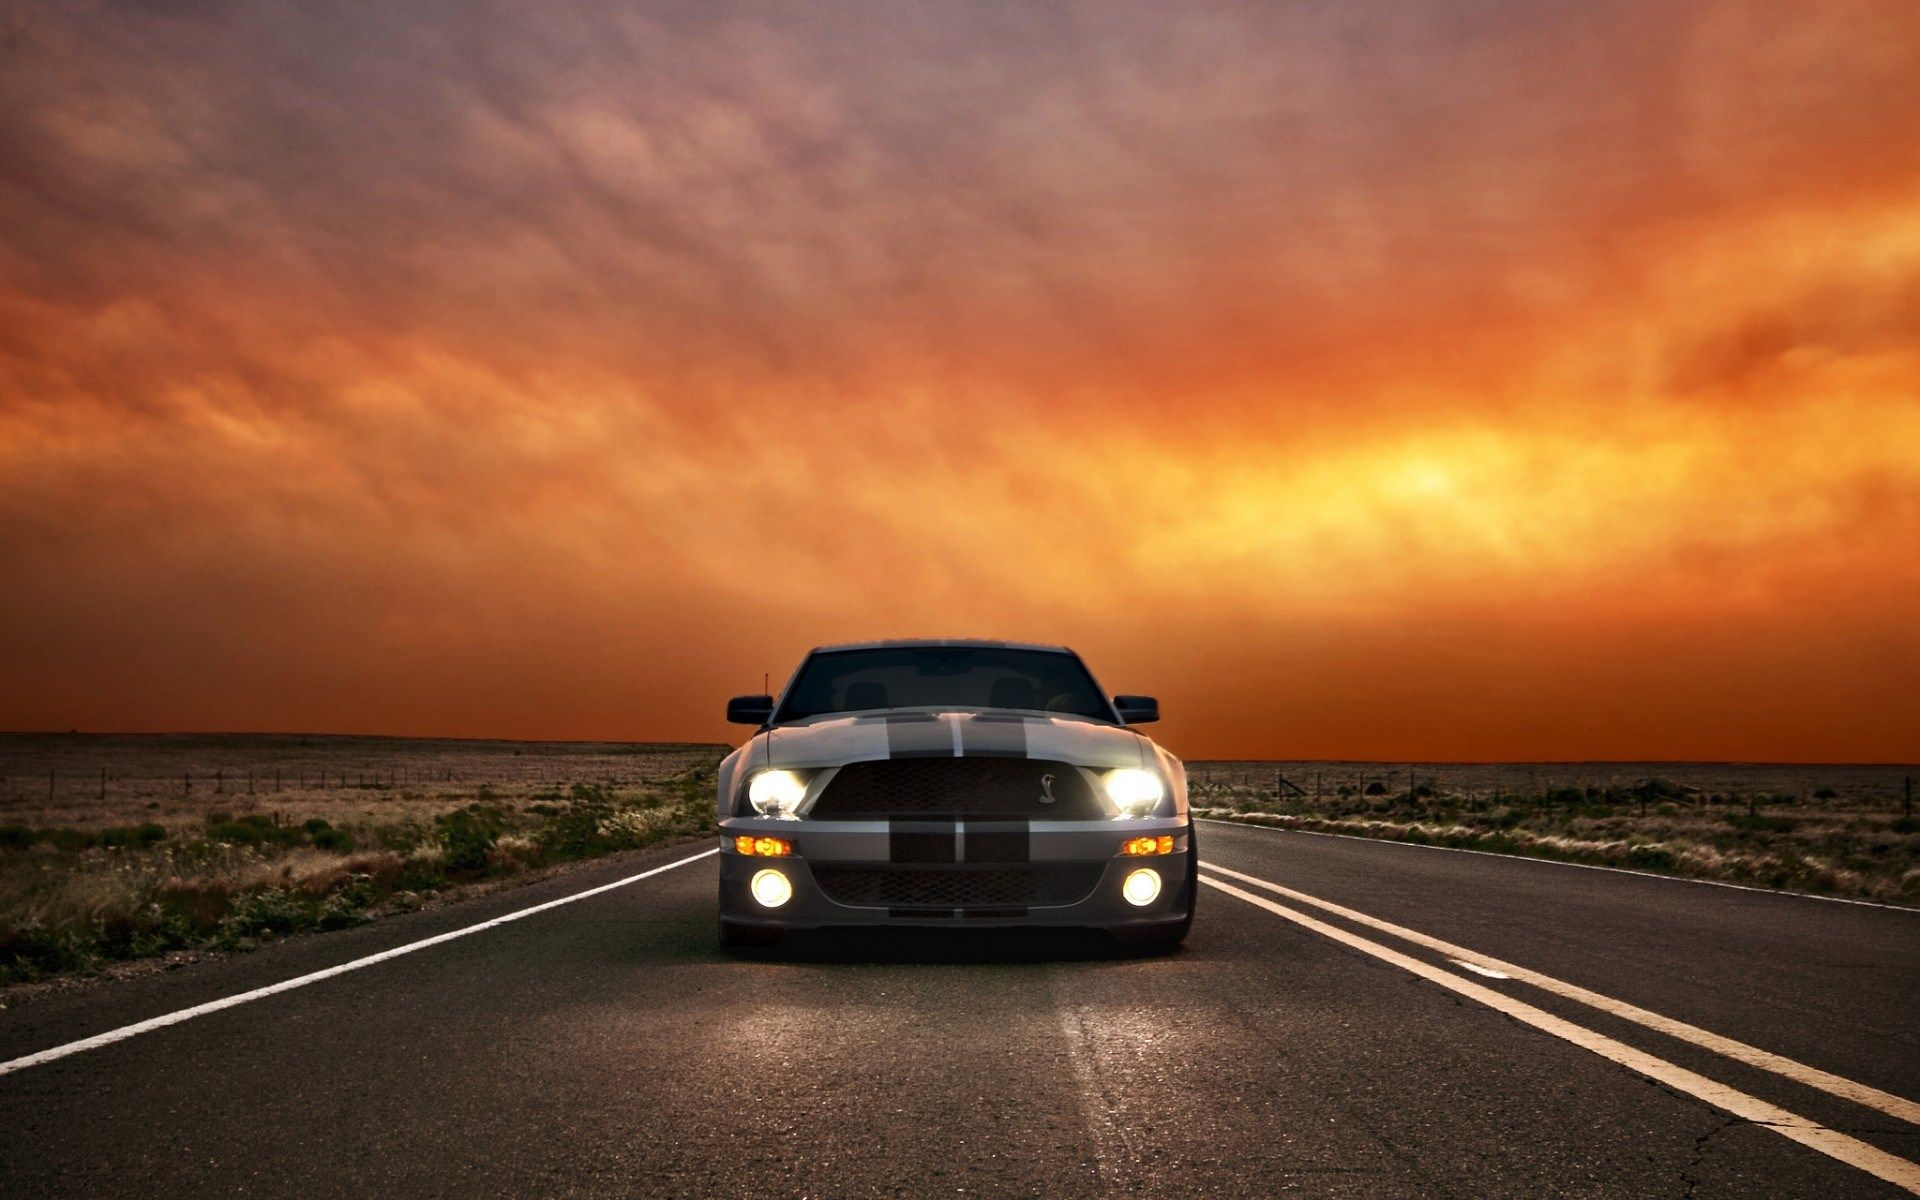 Ford Mustang Shelby Cobra Gt 500 Wallpaper For Mac Computers Ed Peacock 2017 03 08 Ford Mustang Shelby Cobra Mustang Shelby Cobra Ford Mustang